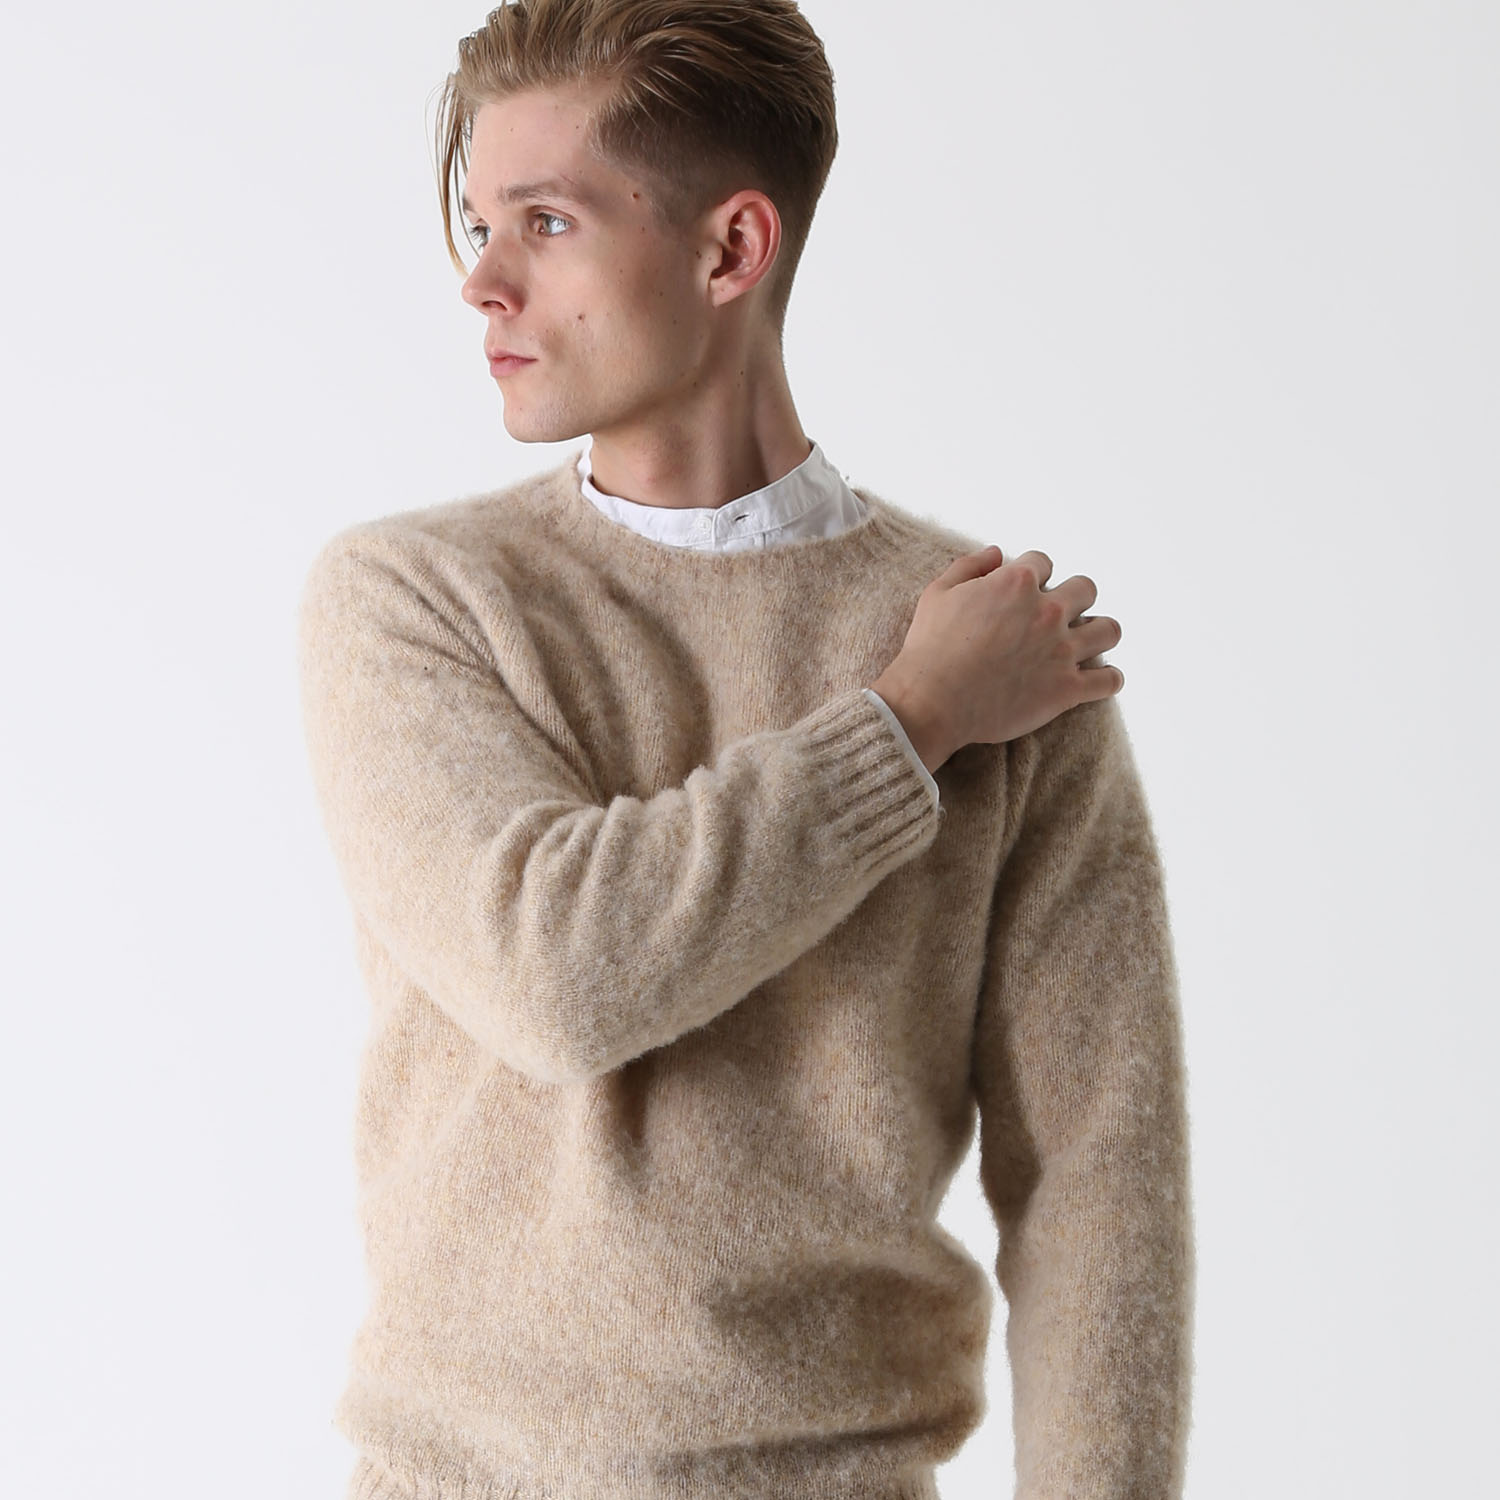 T-lab Coll mens knitwear brushed sand model